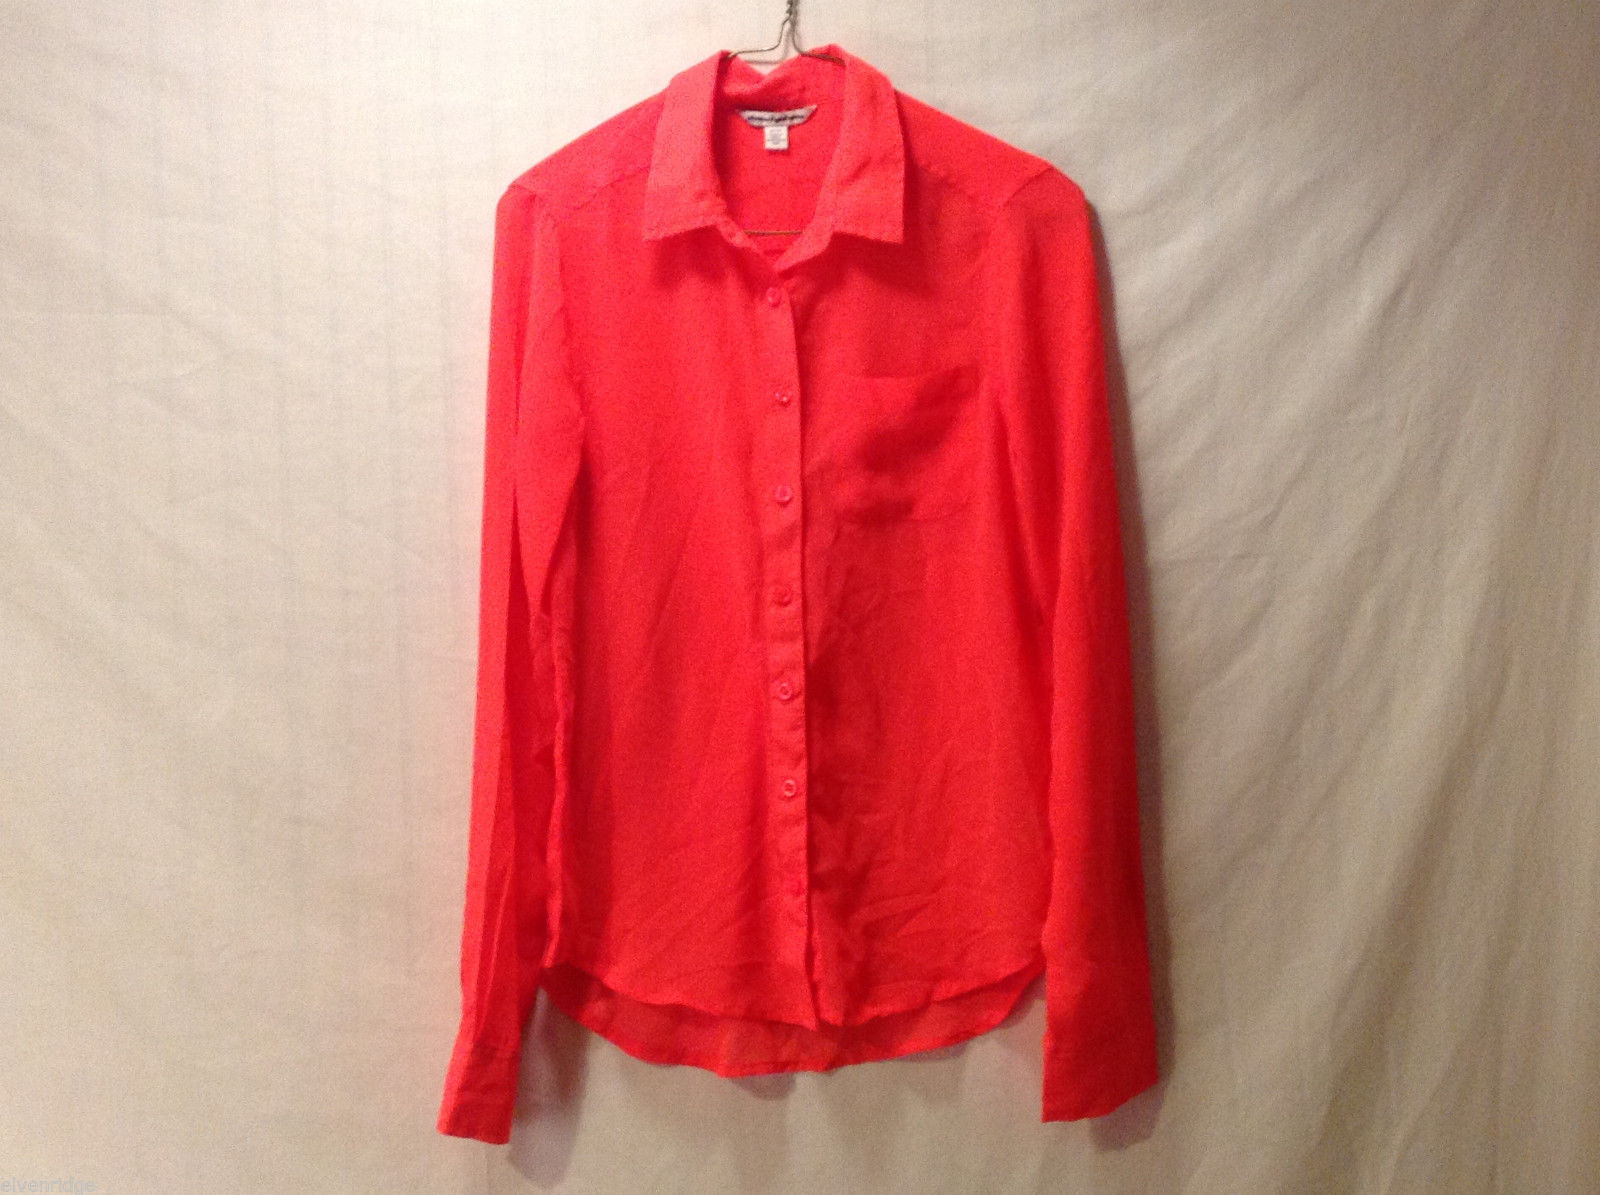 Women's Size XS Button-Down Shirt Coral Tomato Red American Eagle Outfitters AEO